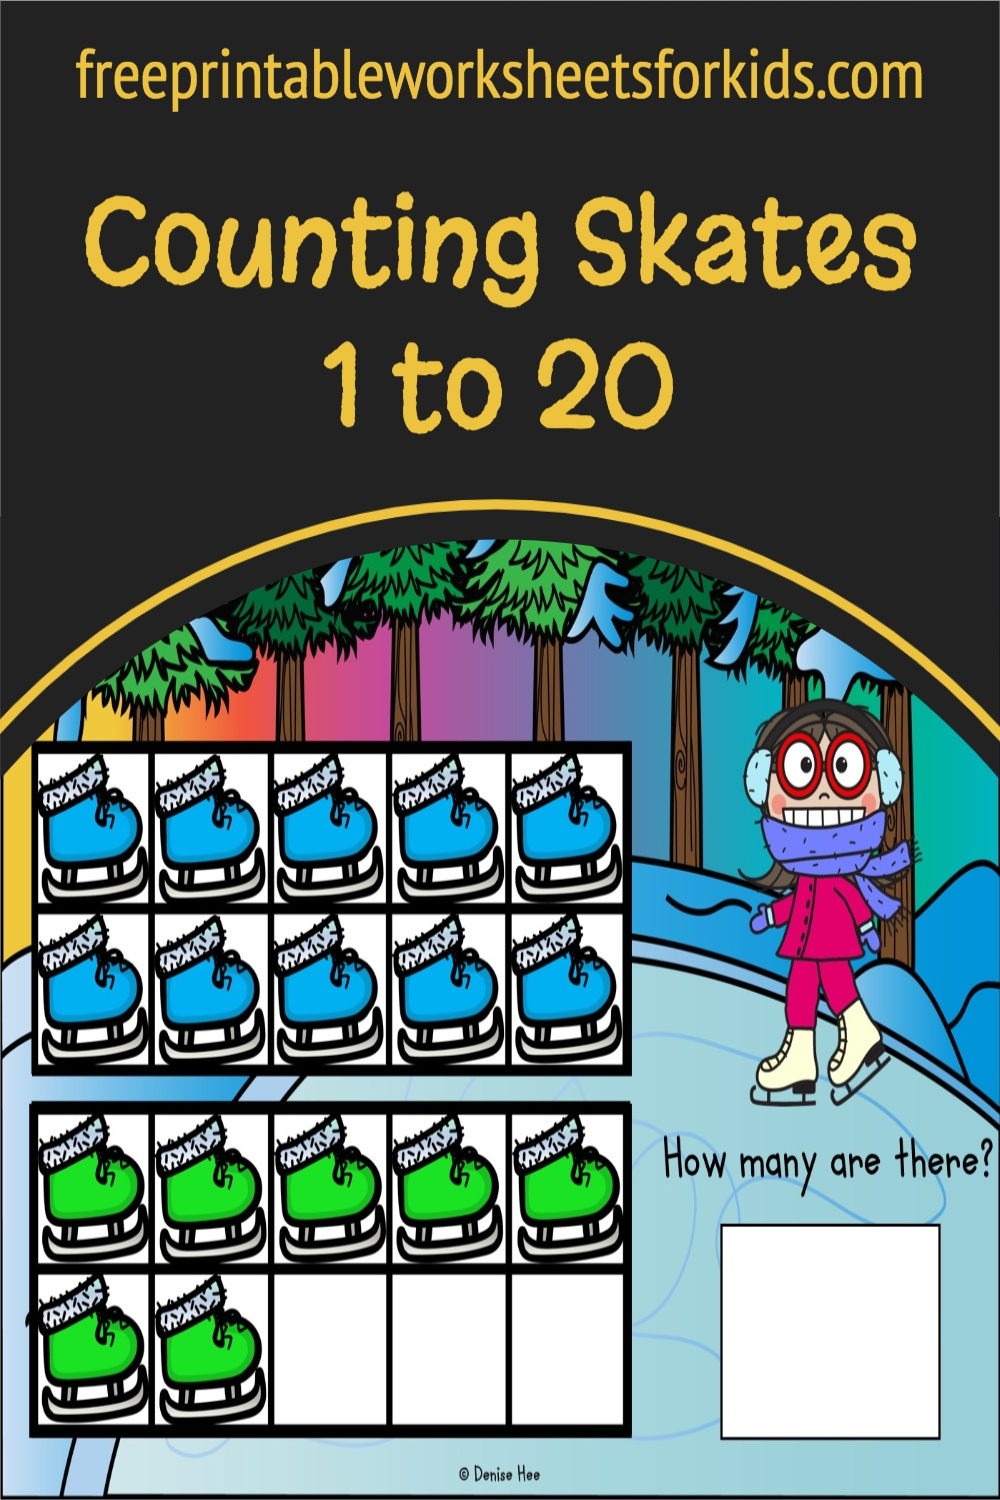 Kindergarten and 1st-grade students will work on counting to 20 and one to one correspondence in this free ice skating activity. Use this as a fun winter math center in your classroom or as a hands-on printable twenty frame game for your homeschool.